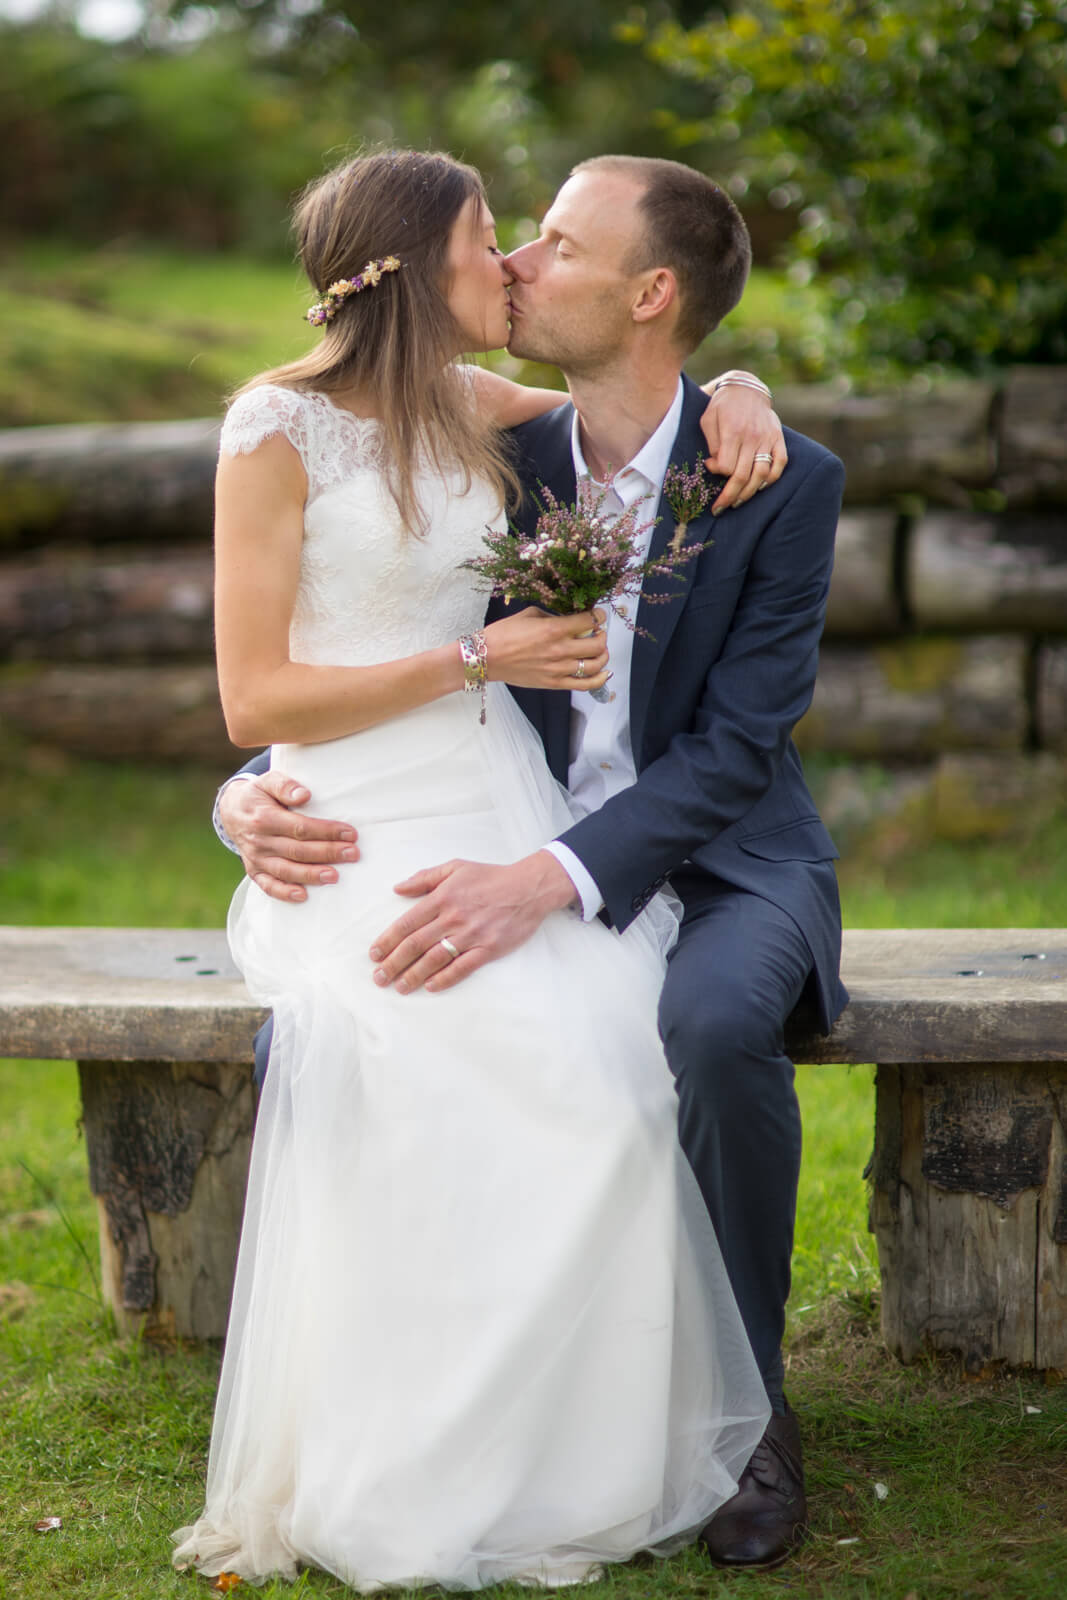 Bride sitting on grooms knee kissing on a bench